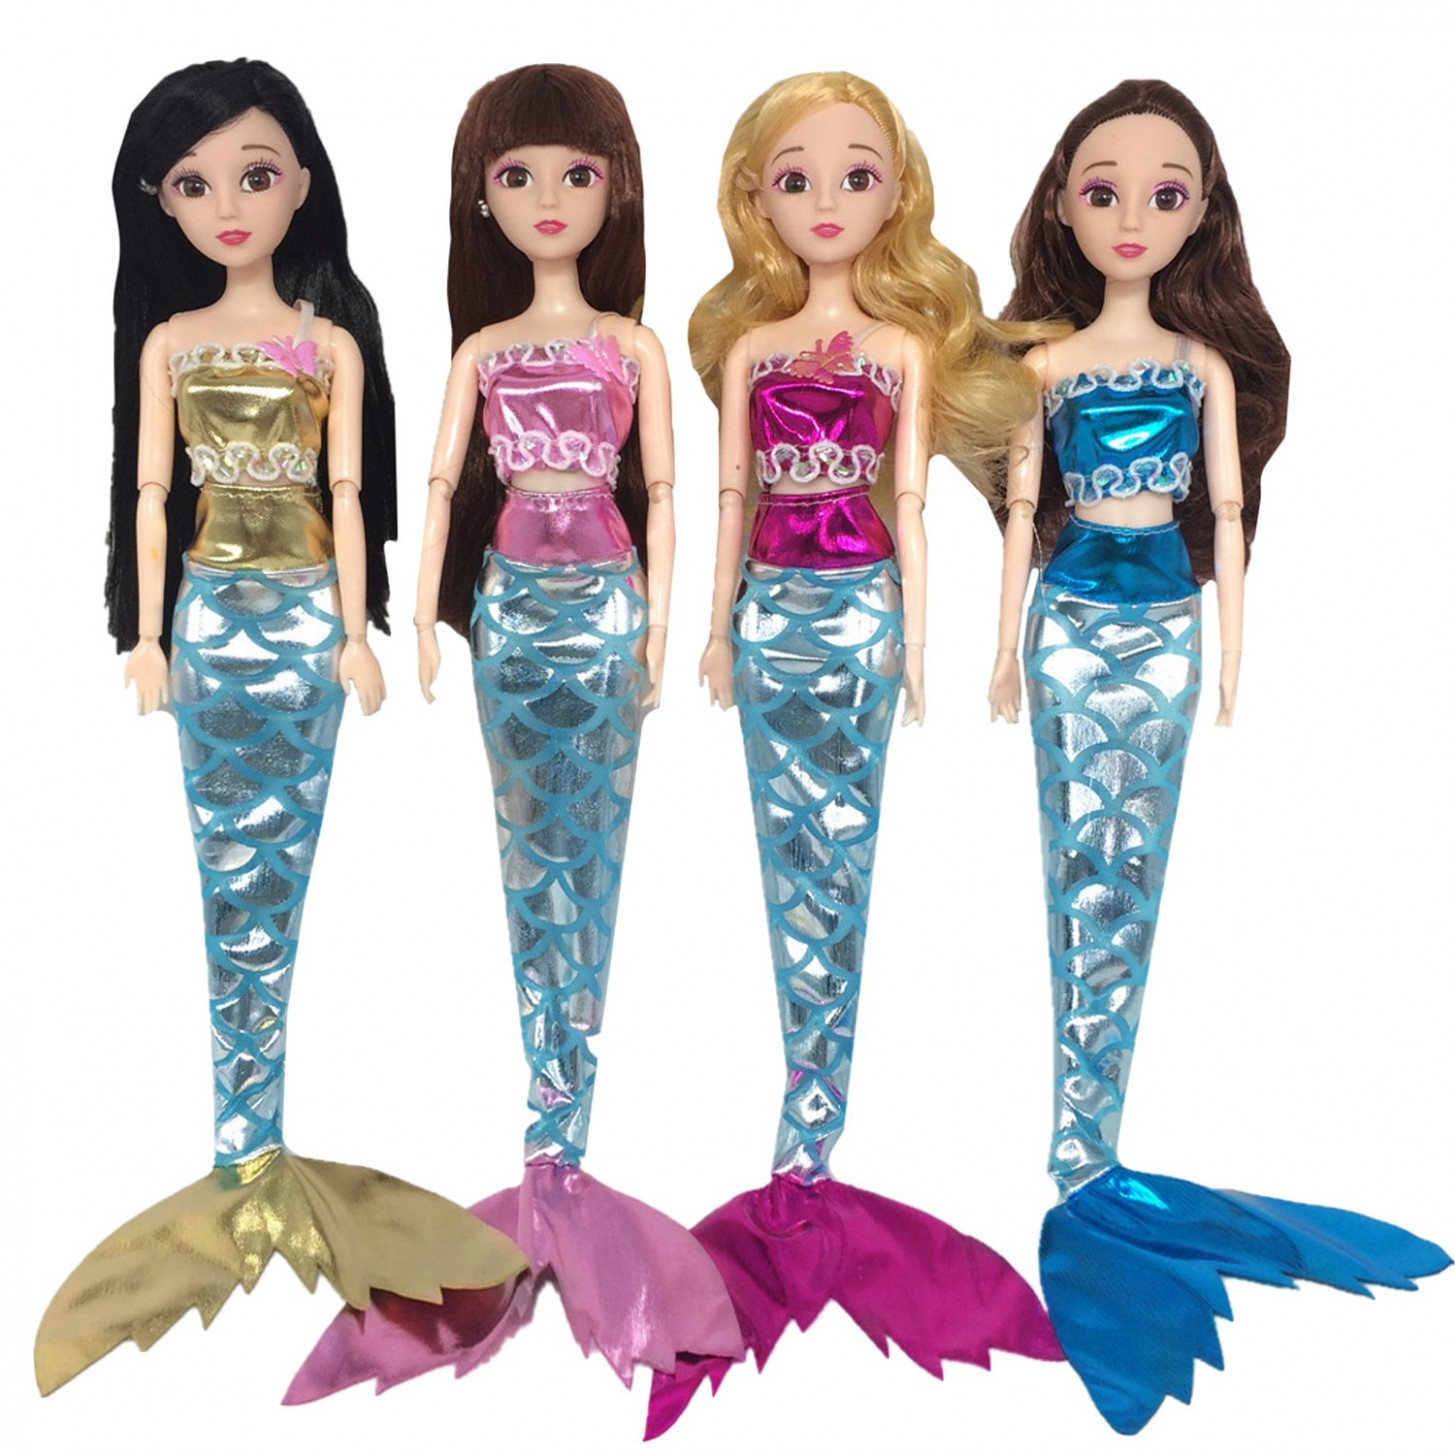 Amazon.com: 12 Set Assorted Color Girl Doll Clothing Mermaid Style ..